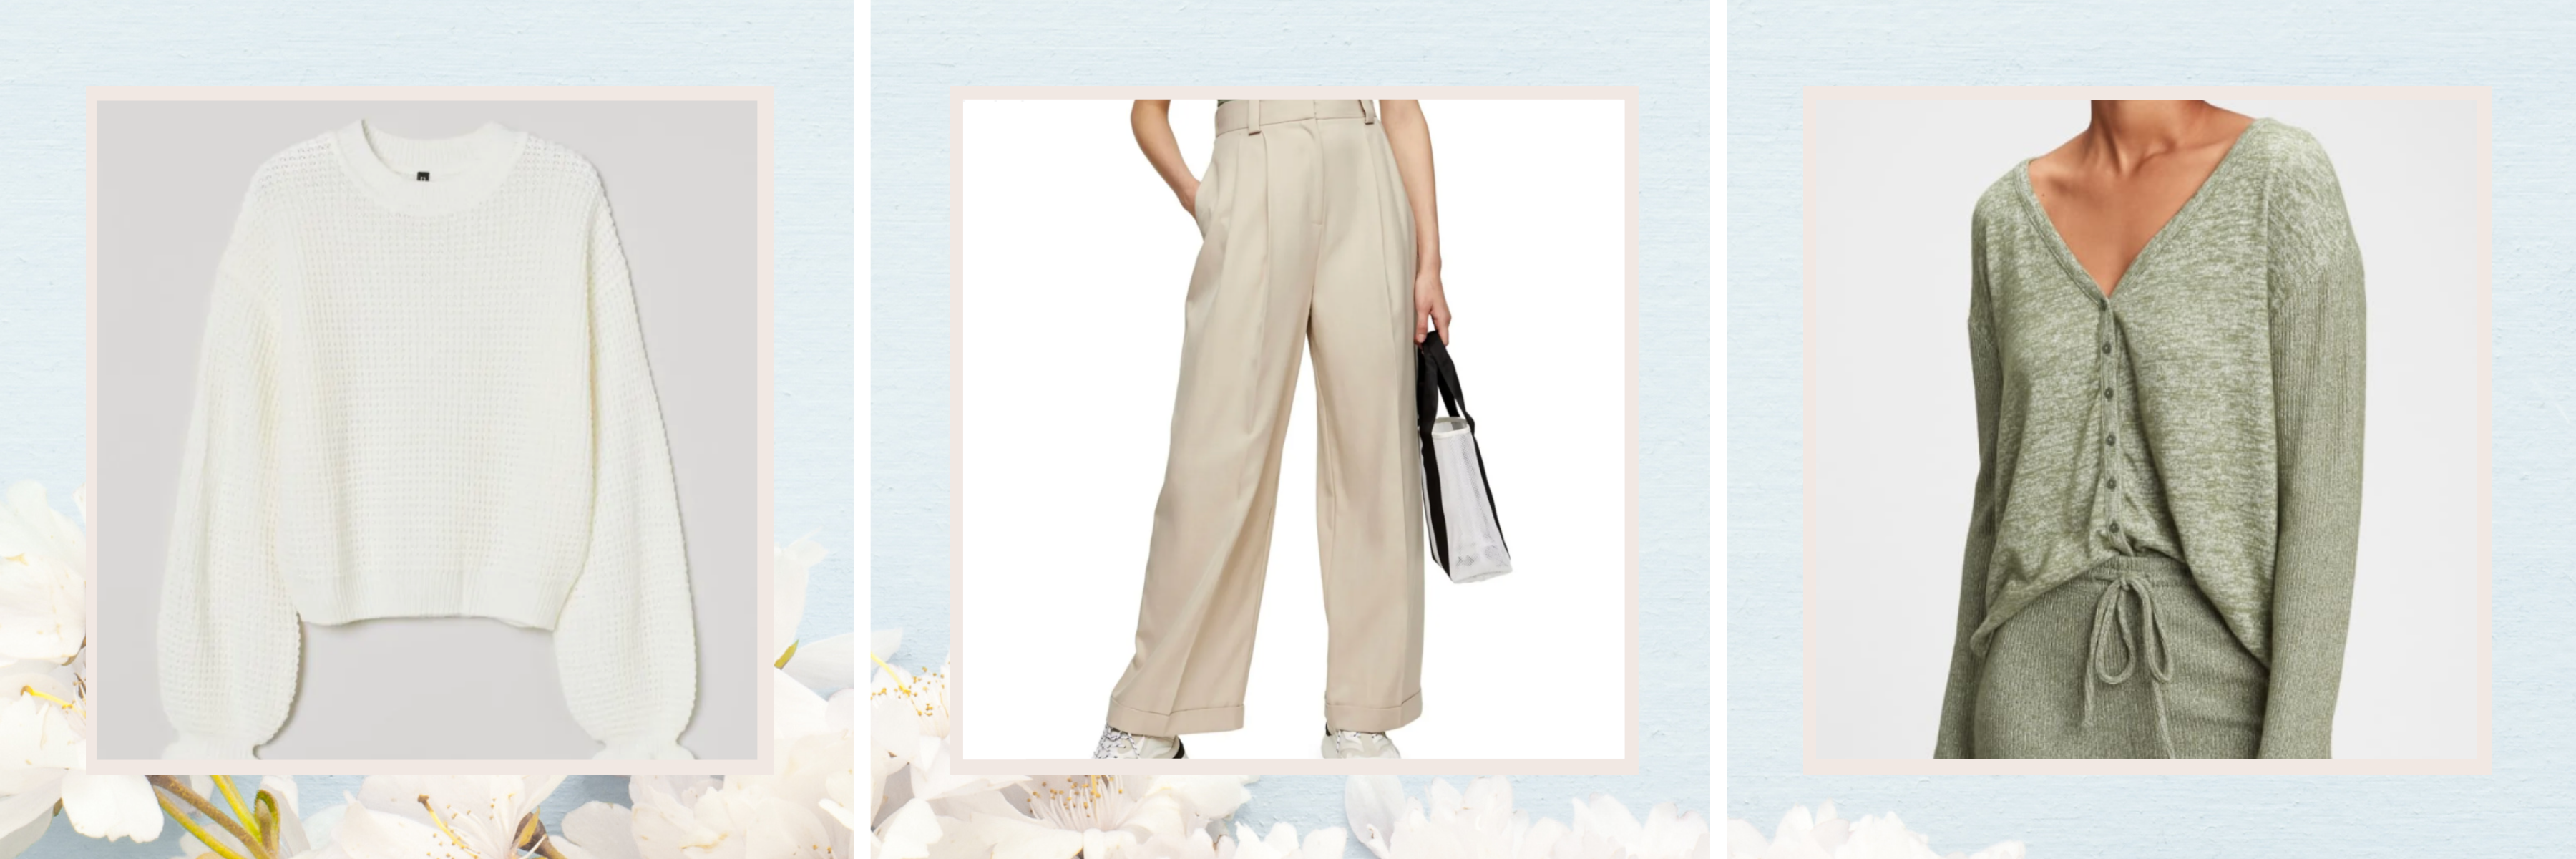 light weight knits and wide-leg trousers